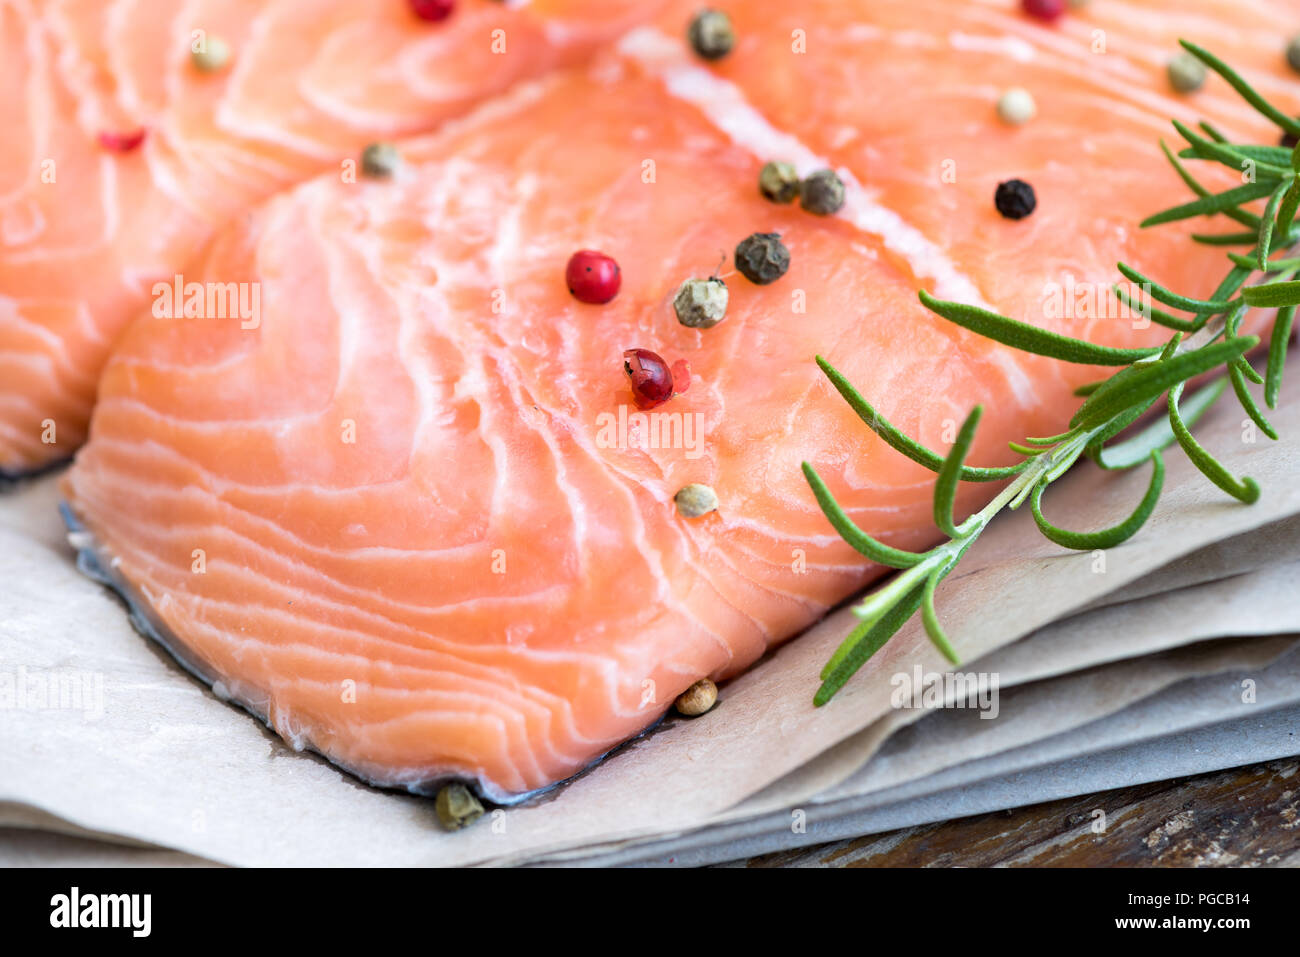 Detail Of Raw Salmon Fish Fillet With Spices And Fresh Herbs Ready